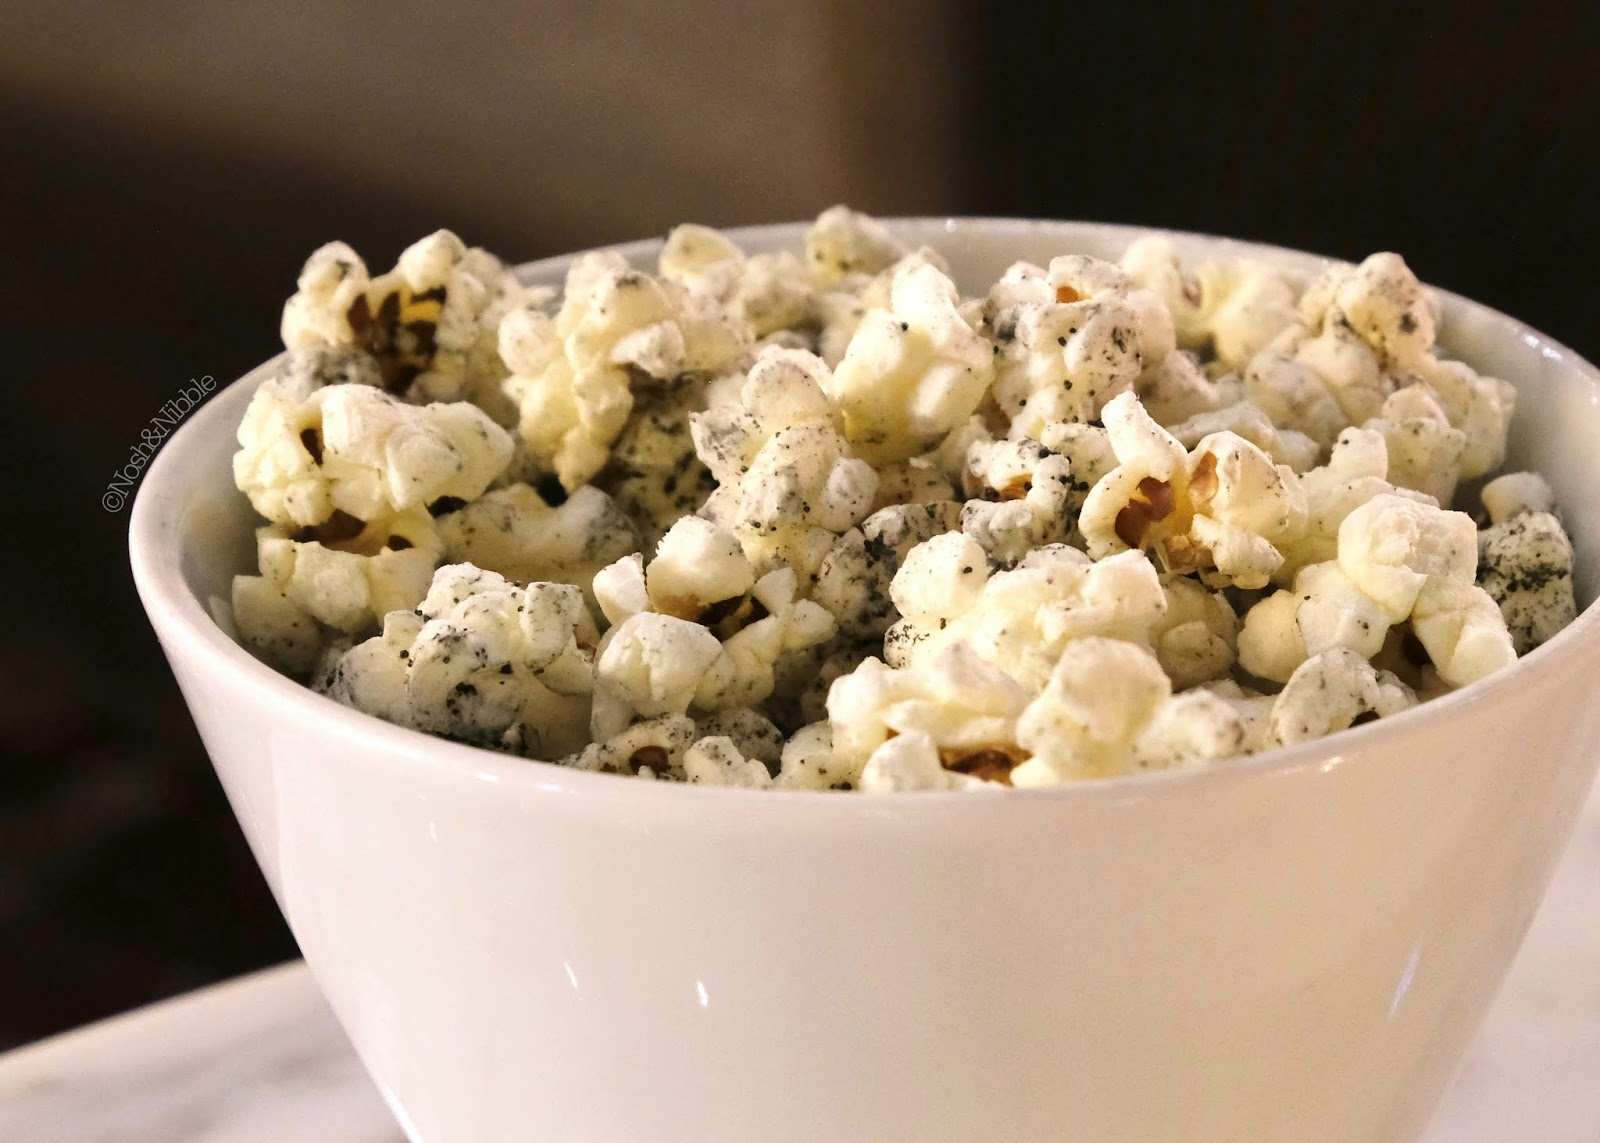 Fairmont Empress | Q Bar Charcoal Popcorn: Review